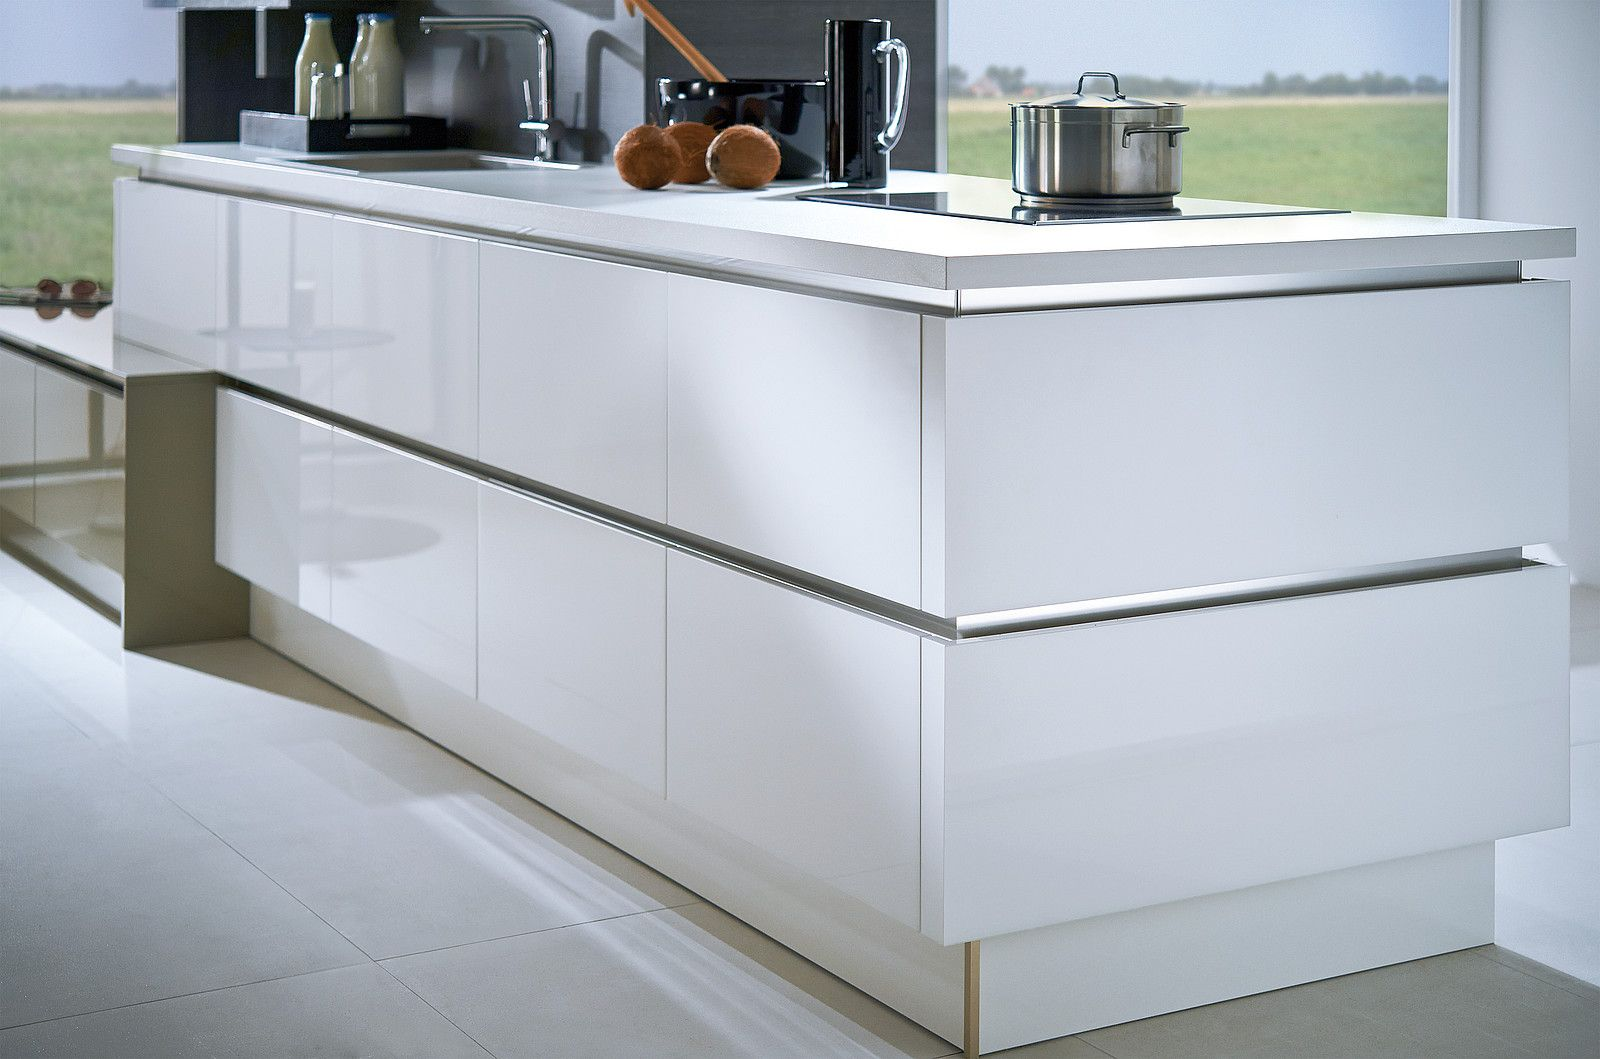 900 Wohnzimmer Ideen Ideas In 2021 Tall Cabinet Storage Nobilia Kitchen German Kitchen Design